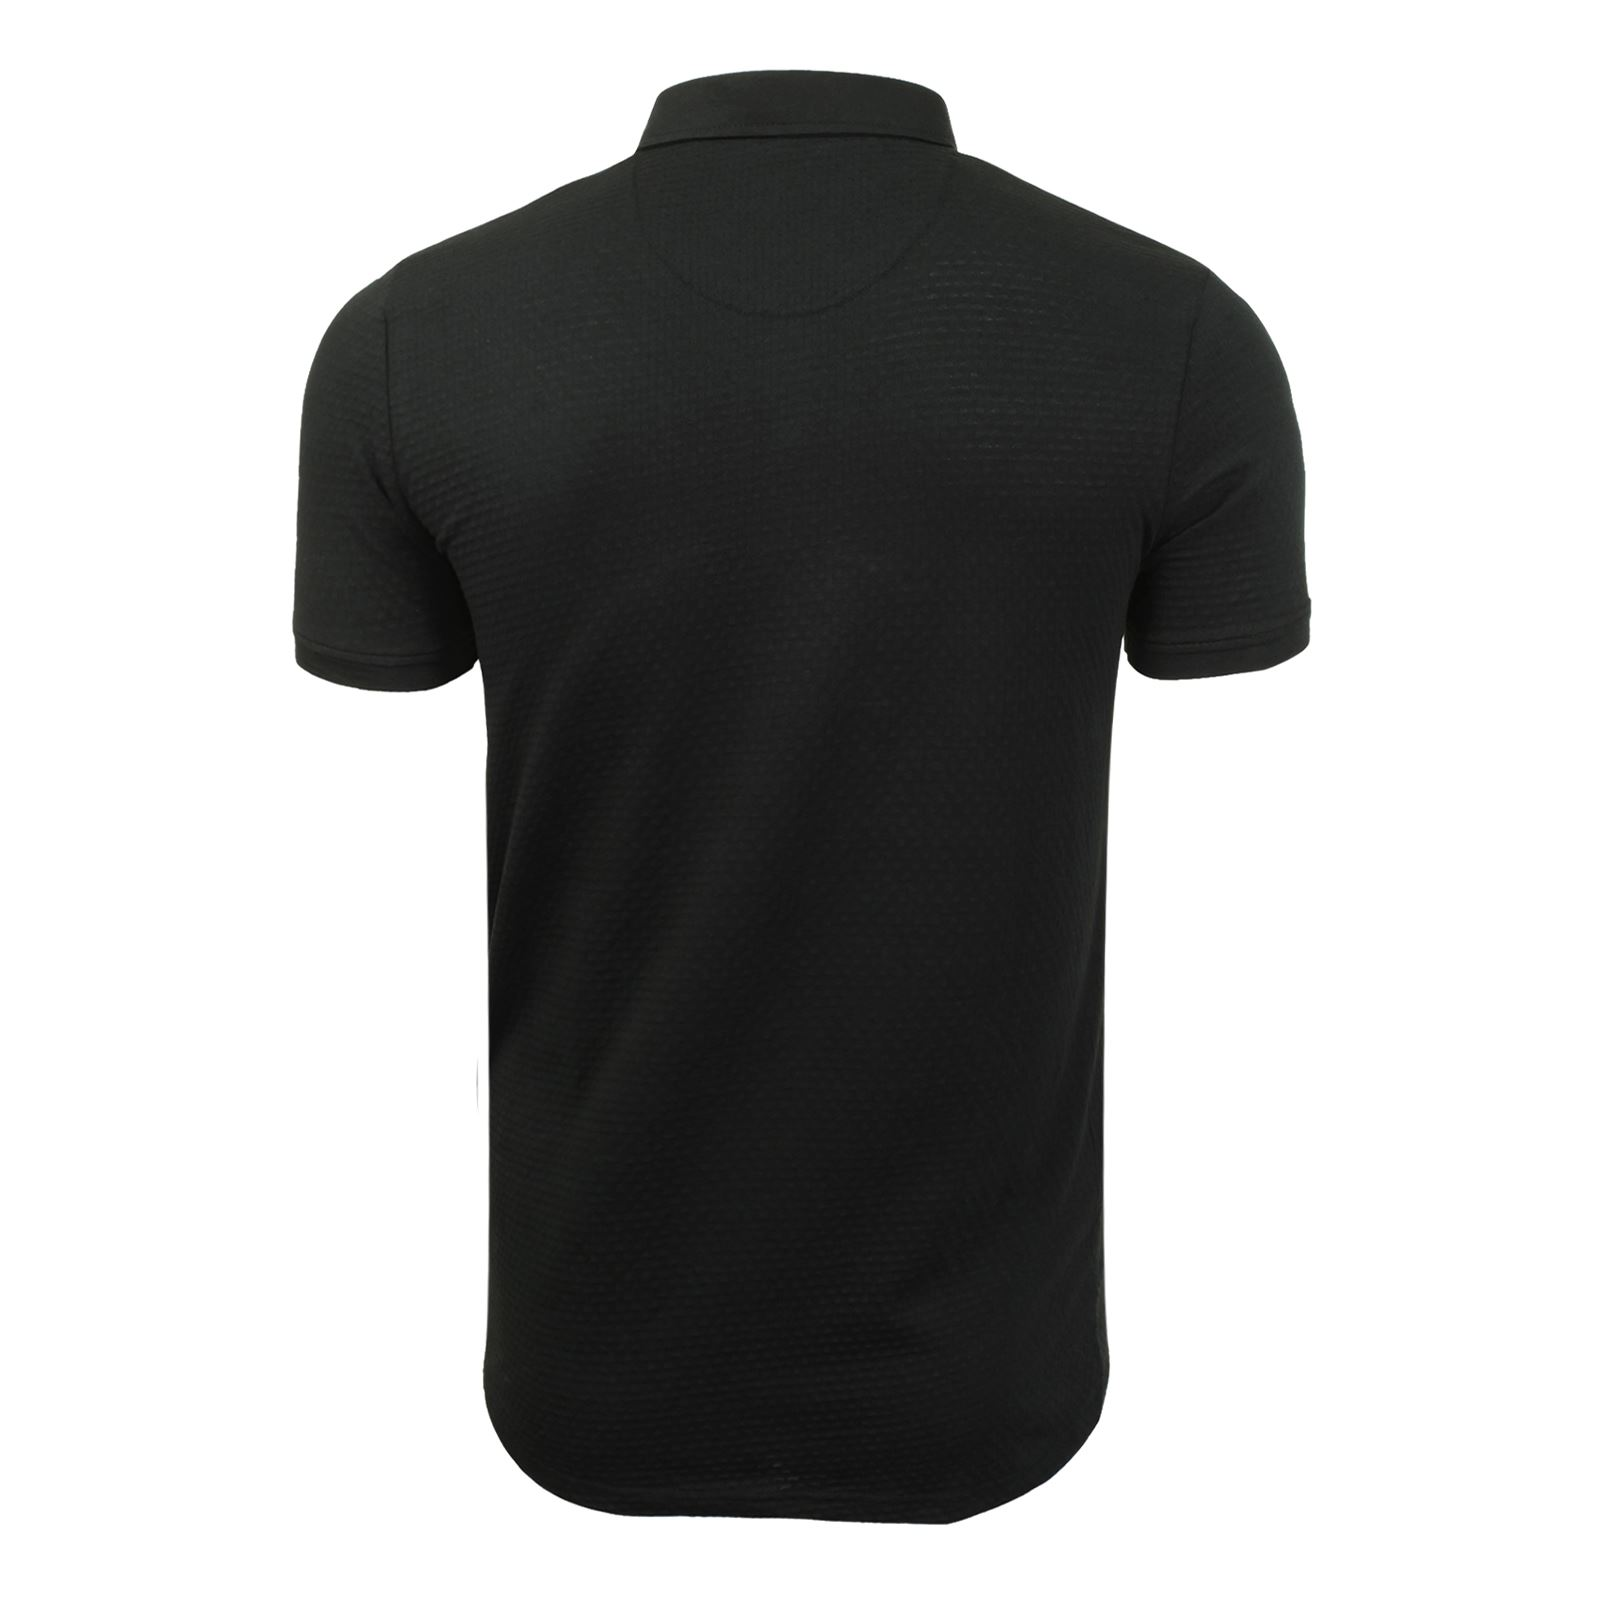 Mens-Polo-T-Shirt-Brave-Soul-Glover-Cotton-Collared-Short-Sleeve-Casual-Top thumbnail 85